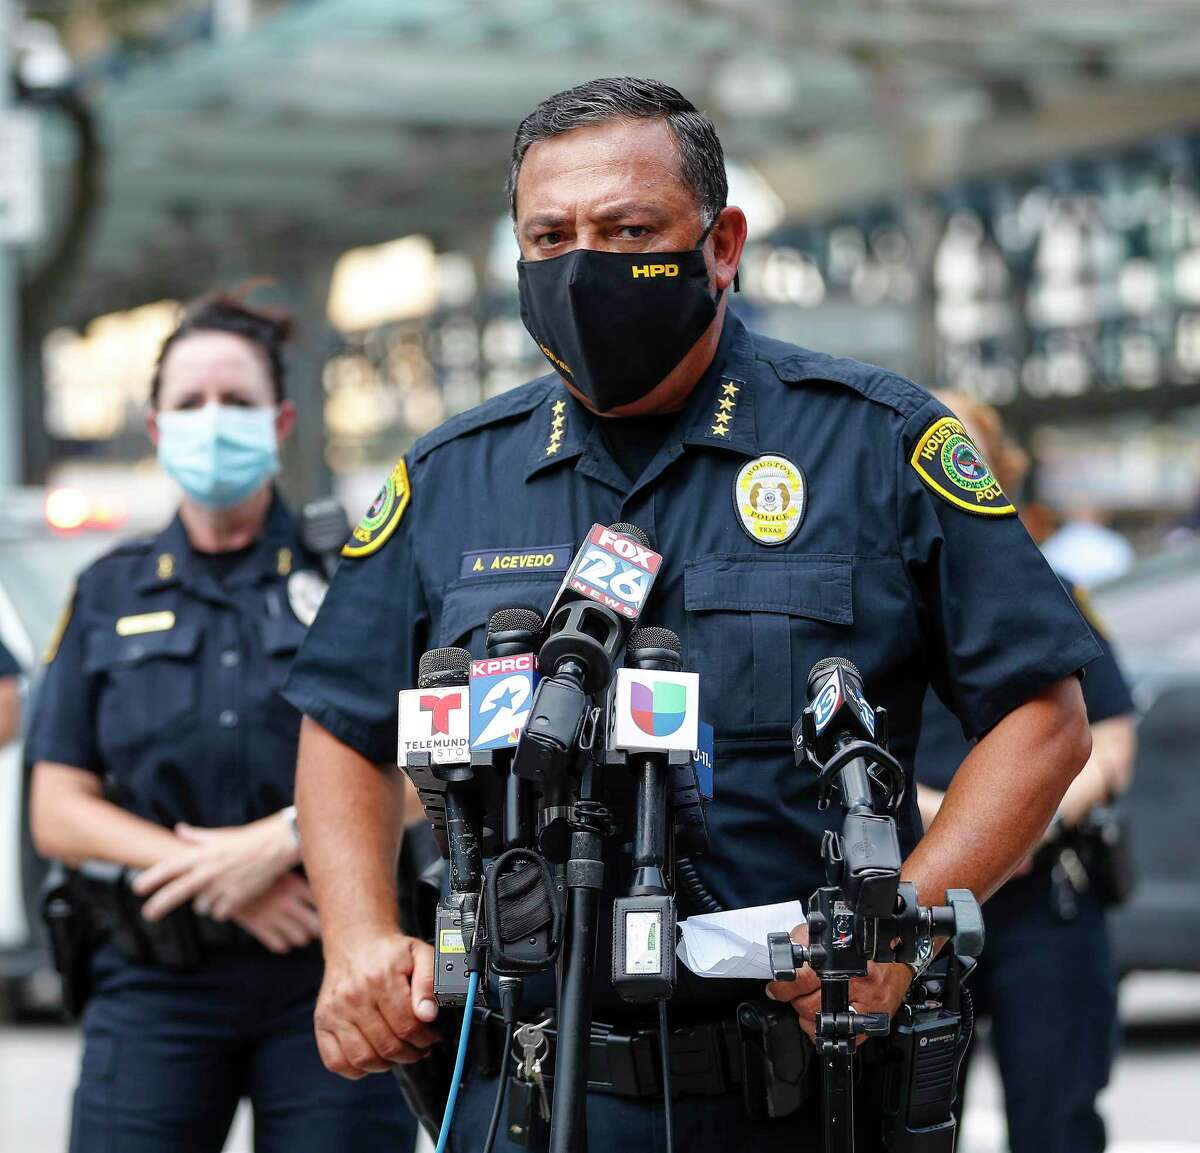 Houston police chief Art Acevedo didn't mince words when he sent a stern warning about looting ahead of Hurricane Laura's landfall. In a series of tweets, Acevedo wrote